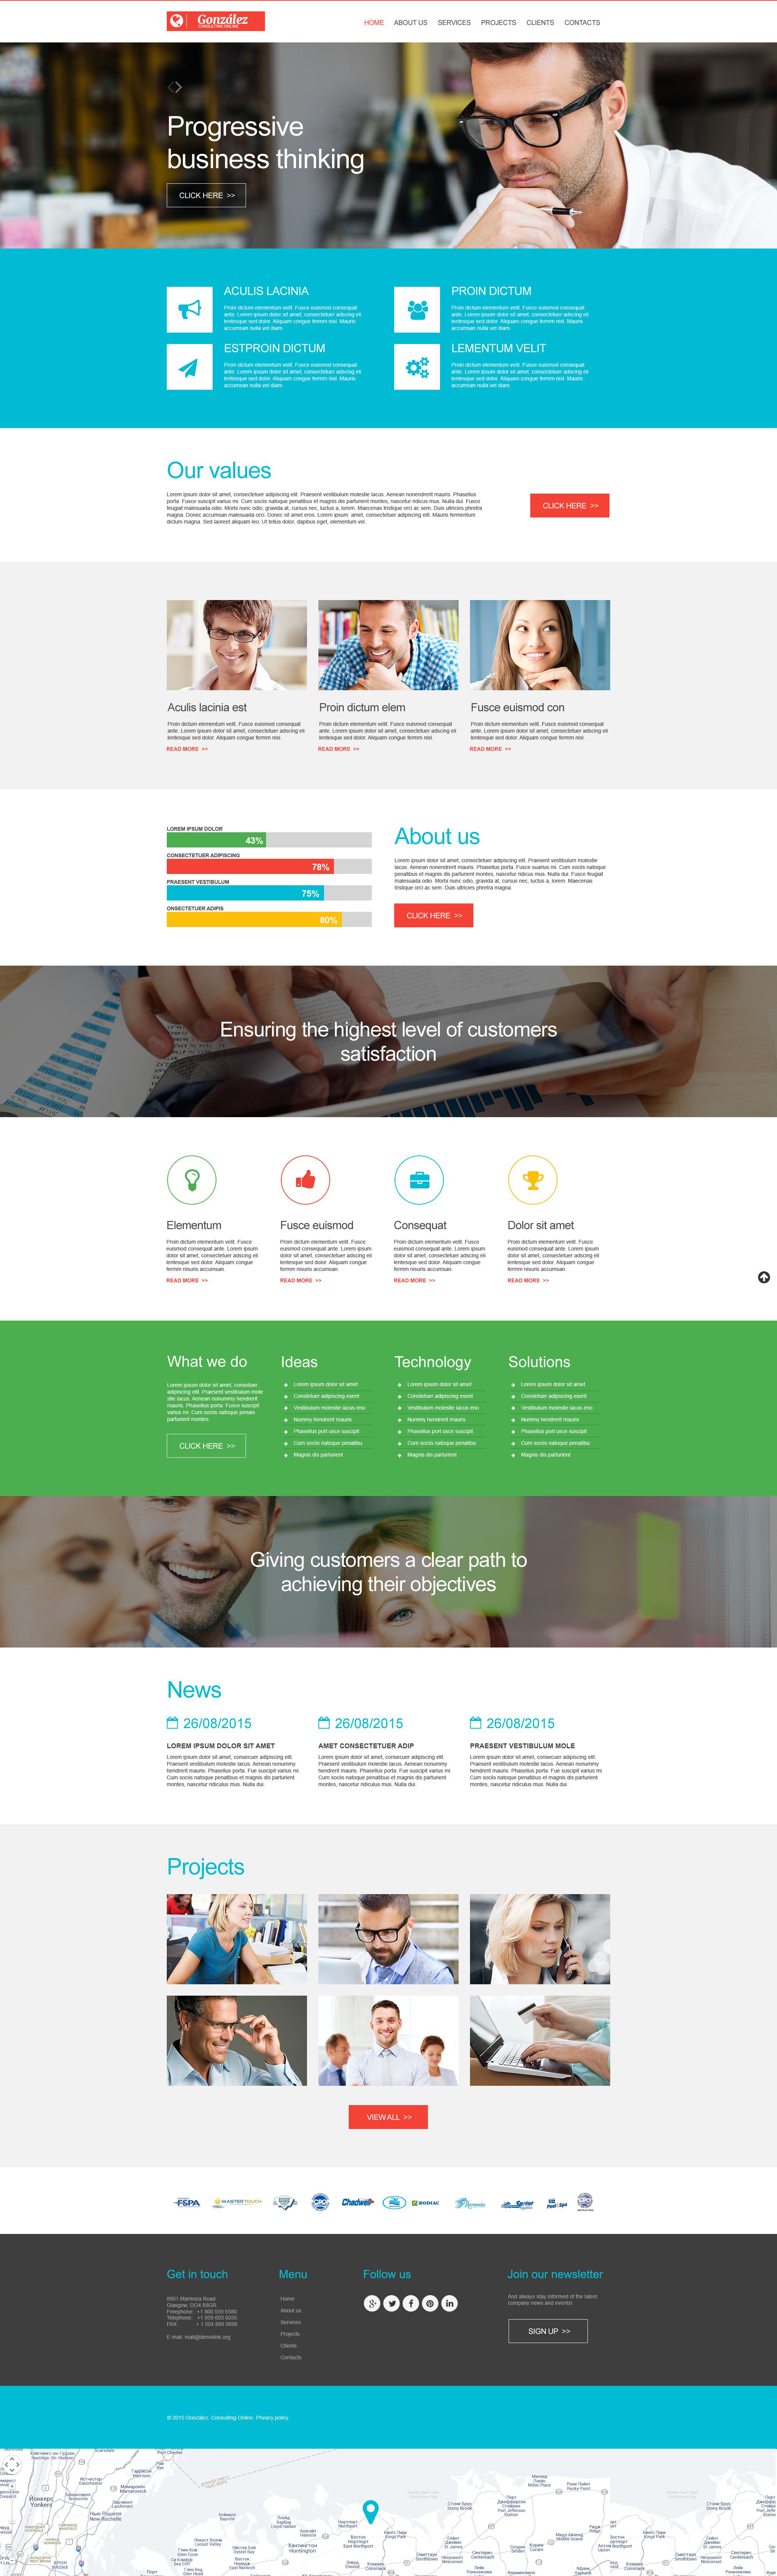 Template Muse para Sites de Consultoria №54943